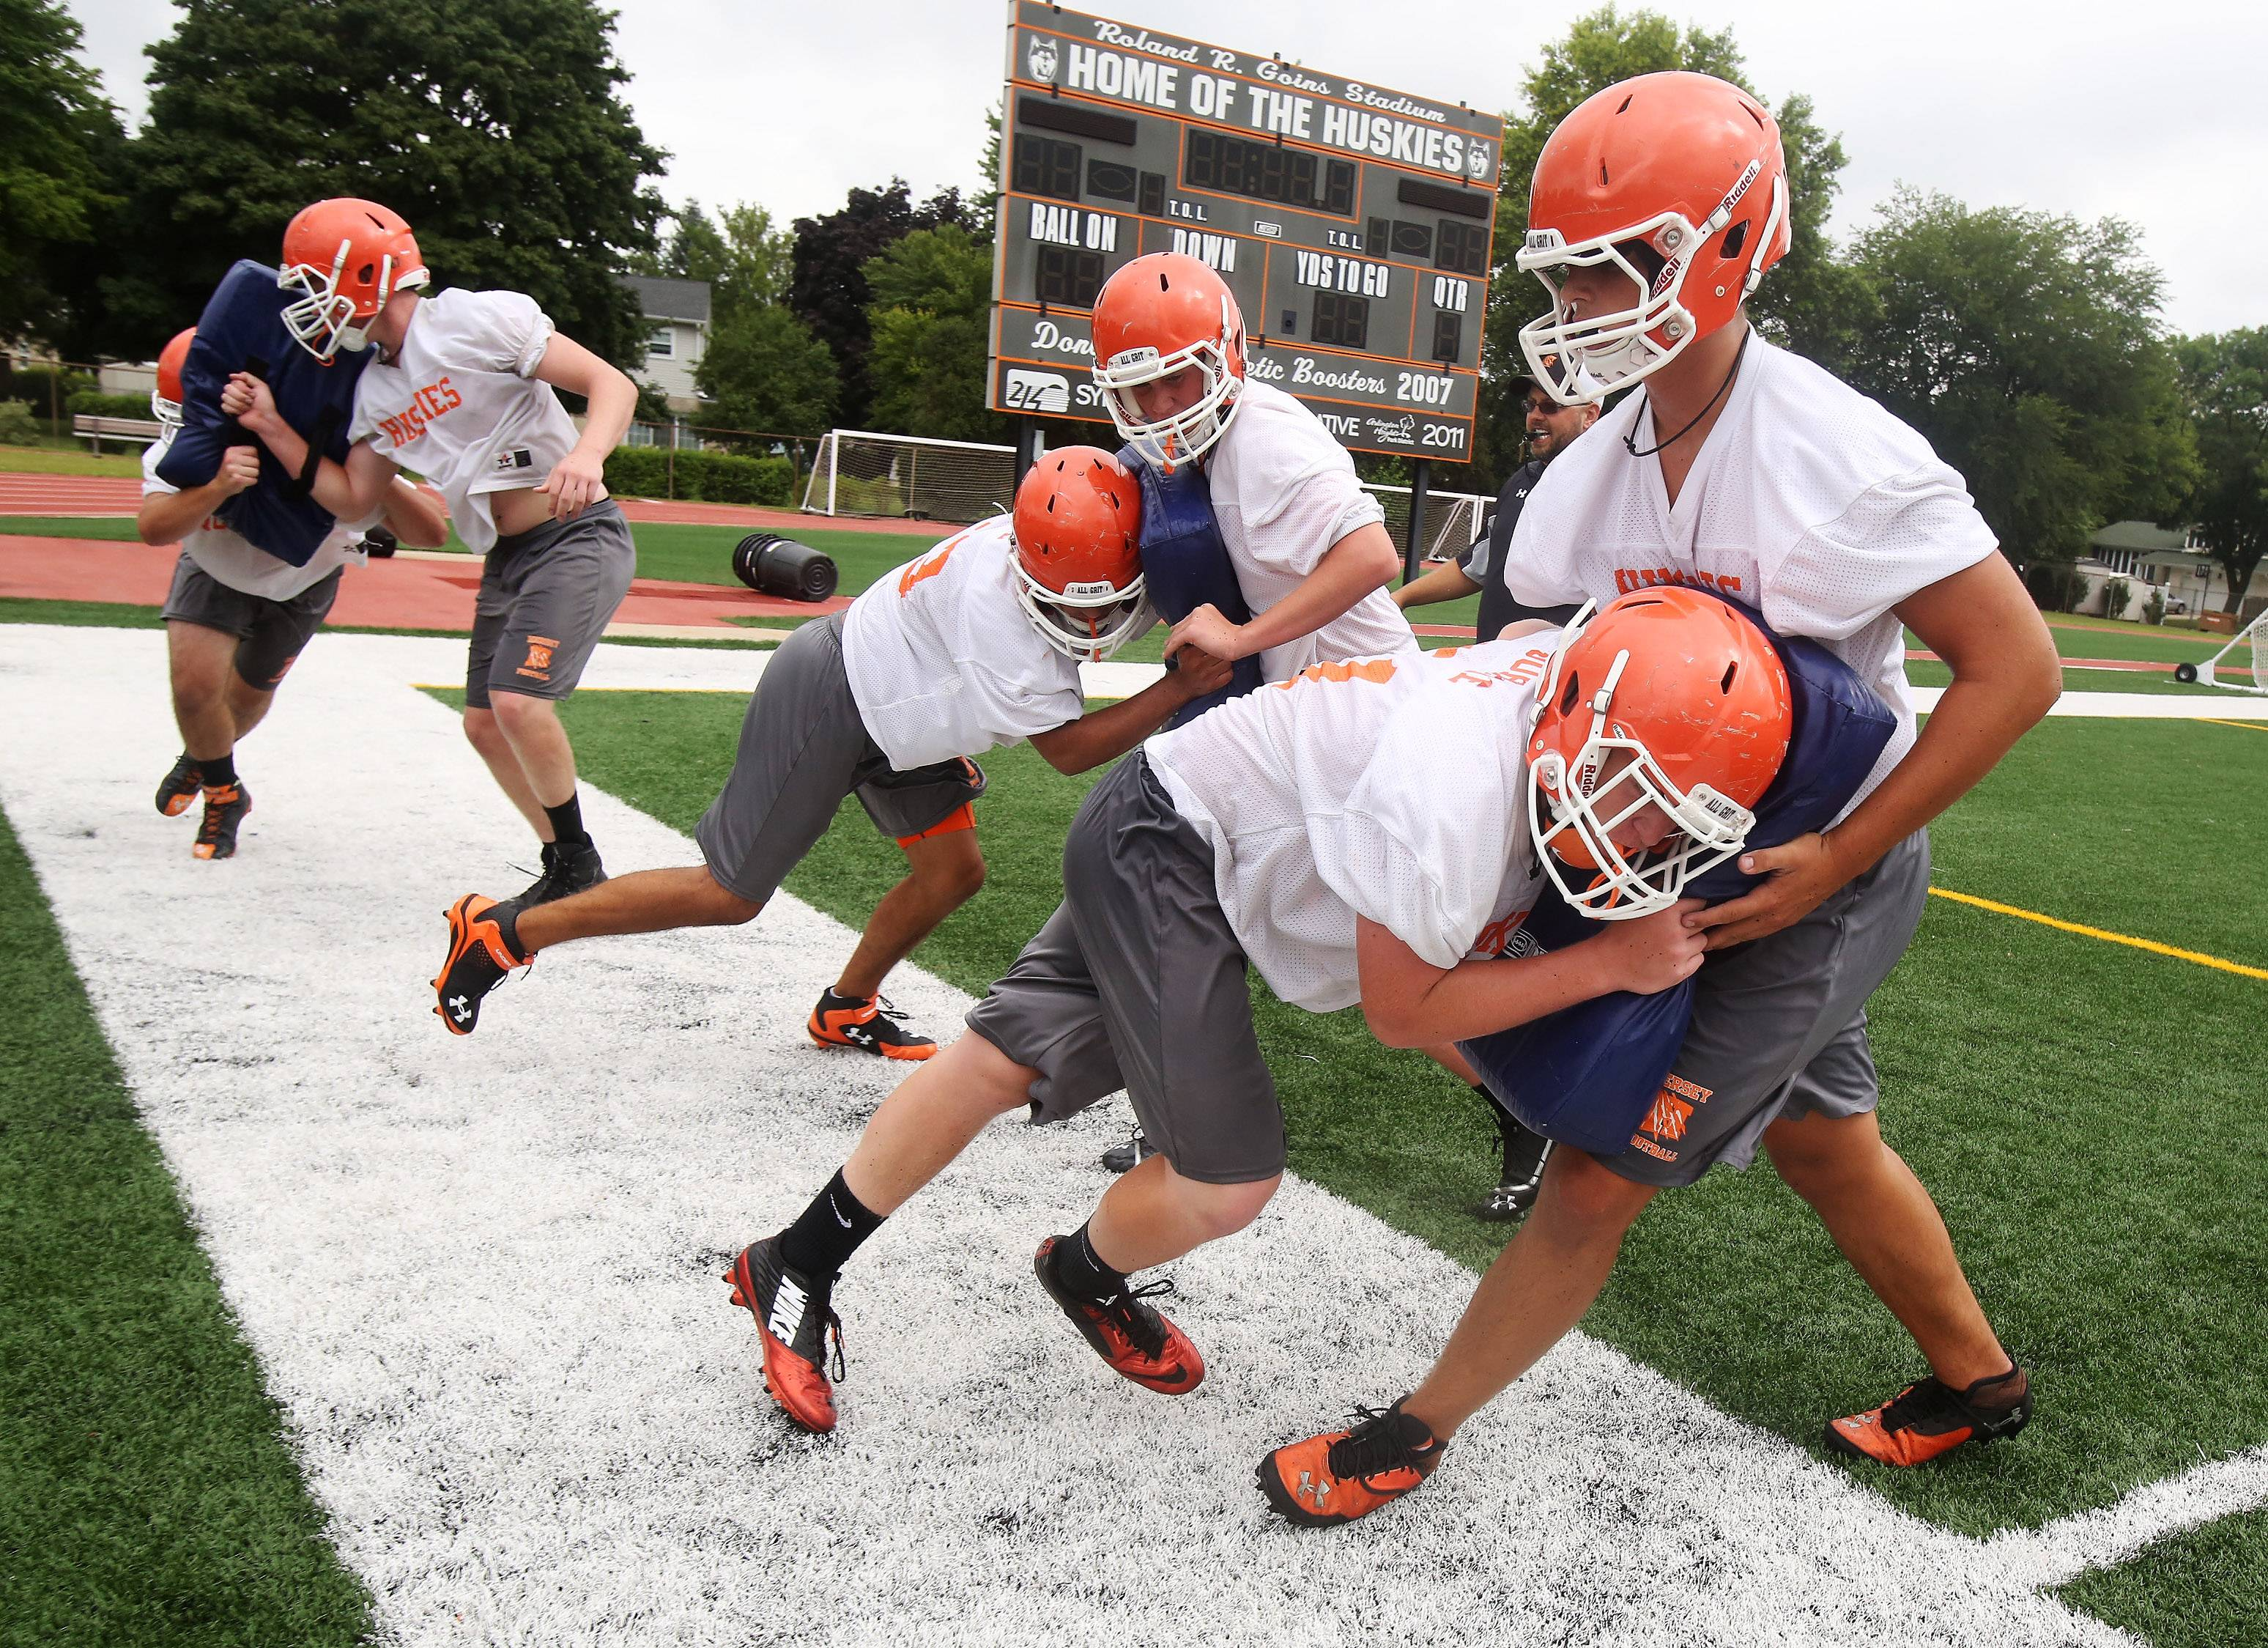 Linemen go through blocking drills during the first day of football practice at Hersey High School on Monday.